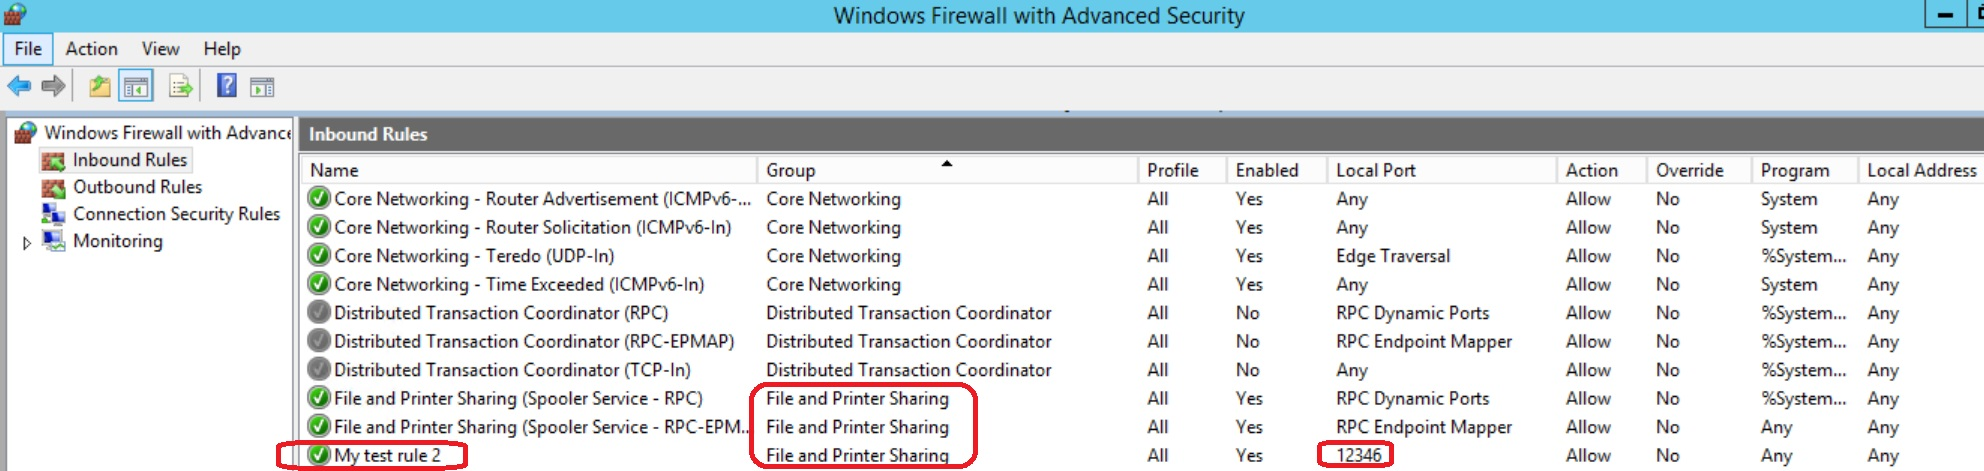 How to Create Windows Firewall Predefined rules using Powershell